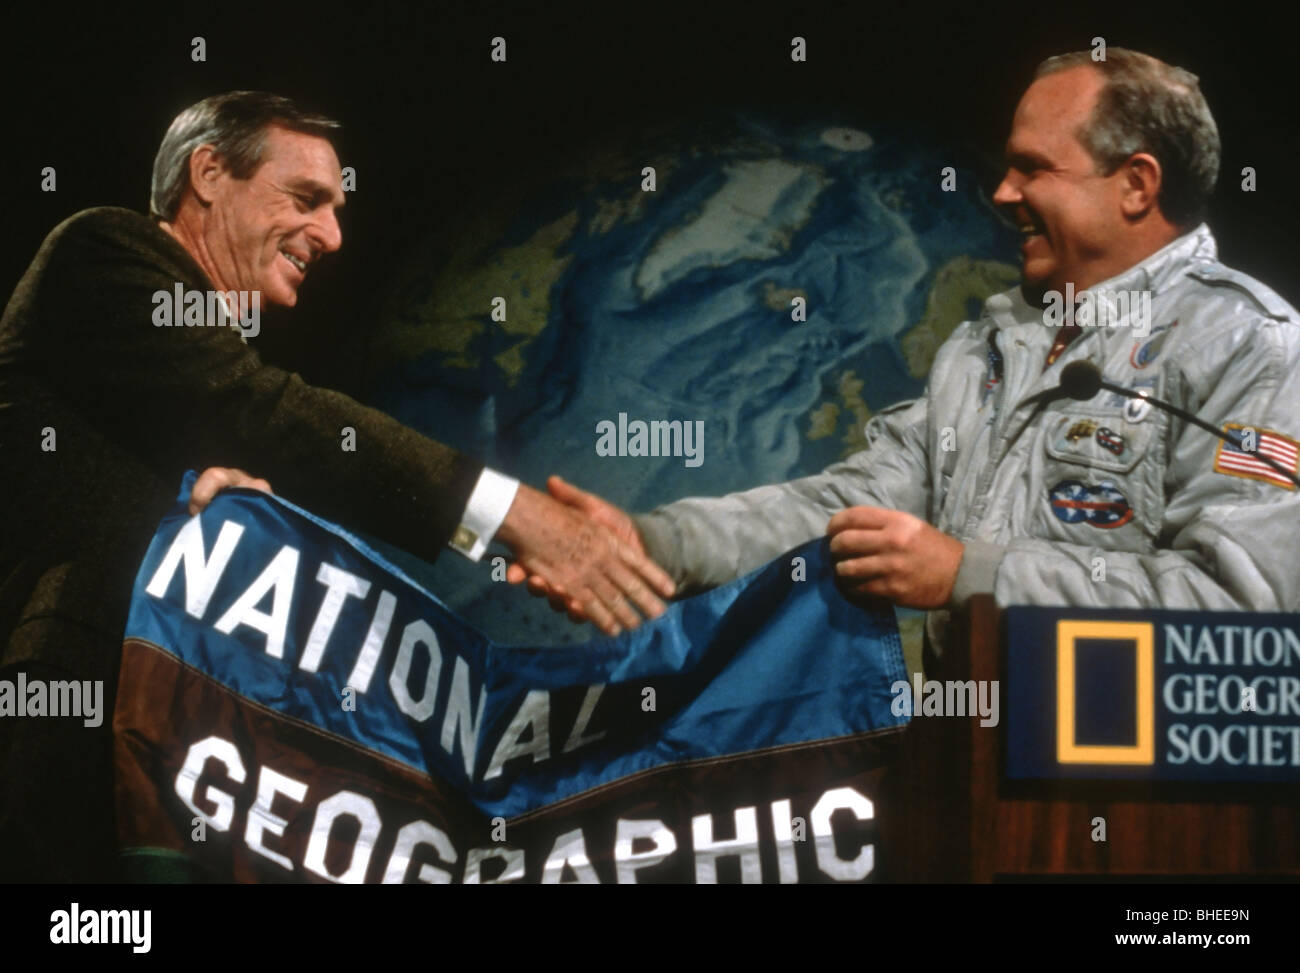 Adventurer Steve Fossett (R) is welcomed by Reg Murphy, president of the National Geographic Society at their headquarters - Stock Image